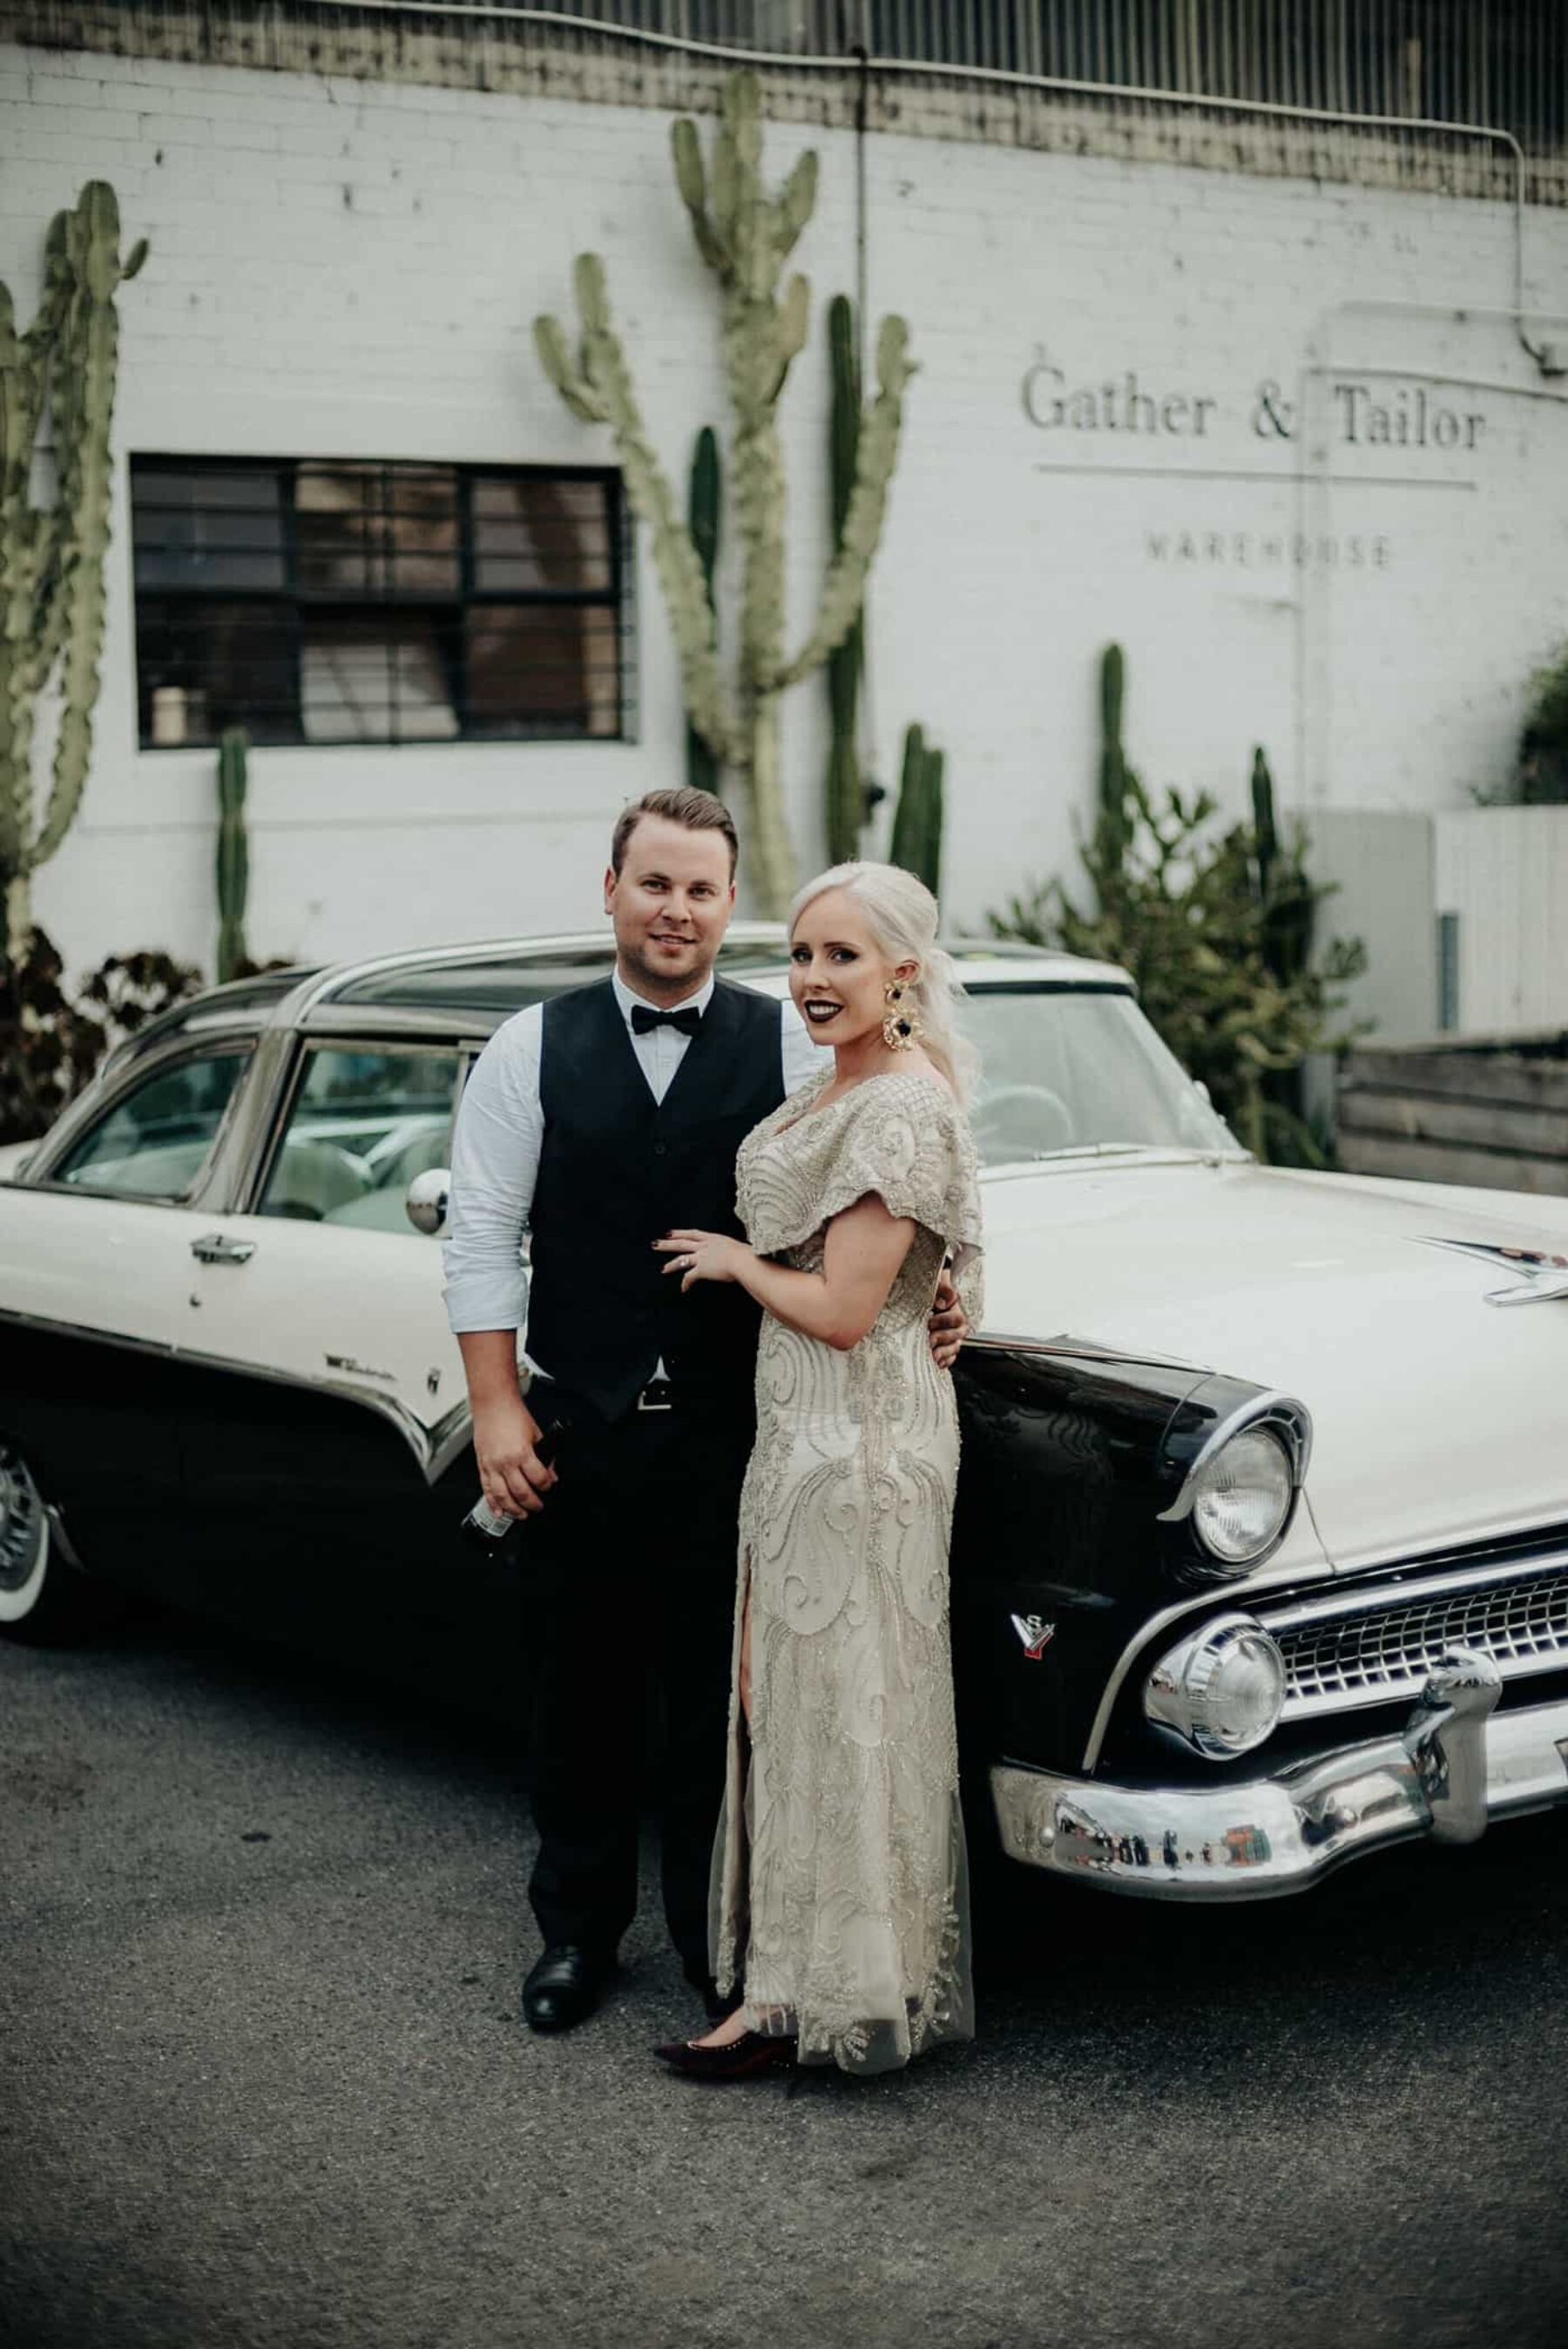 Melbourne warehouse wedding at Gather & Tailor